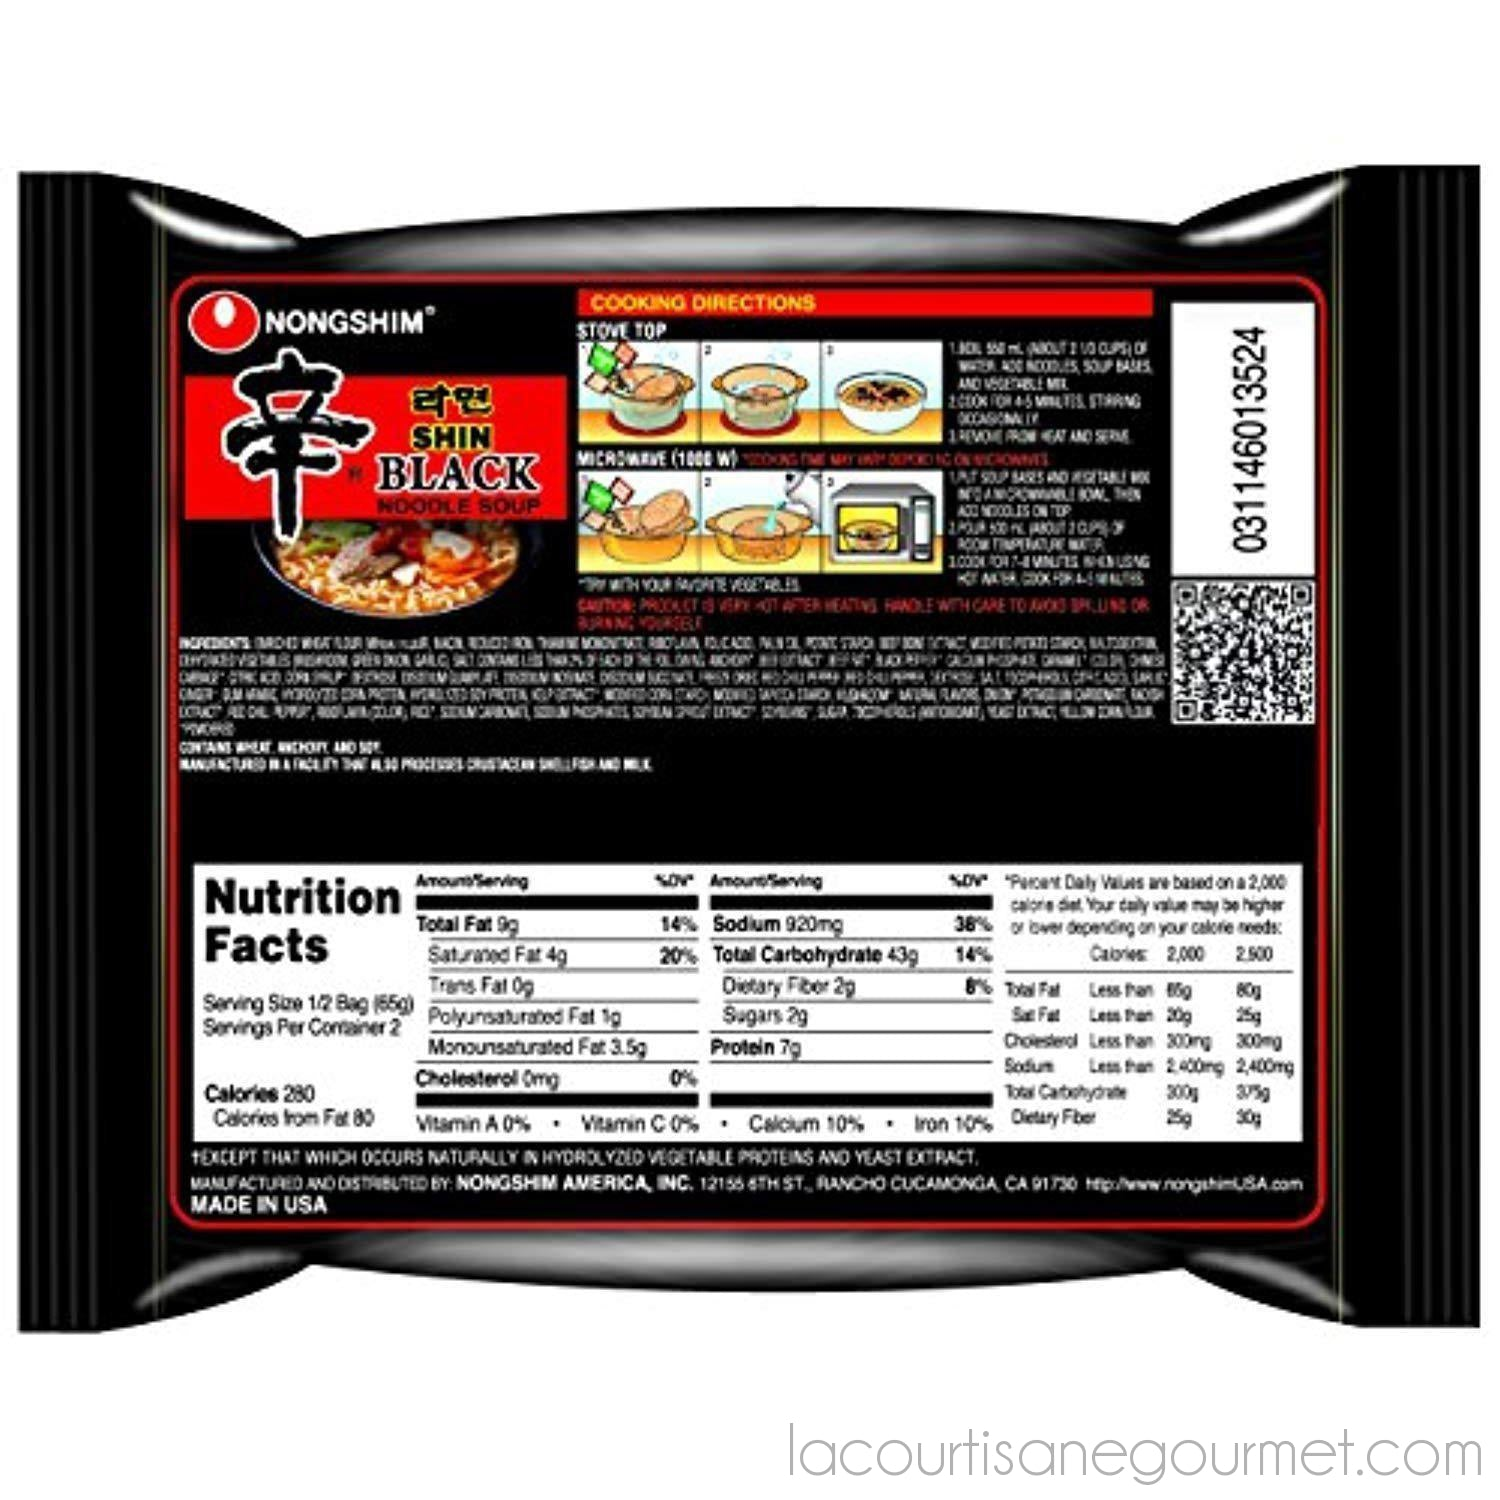 Nongshim Shin Black Noodle Soup, Spicy, 4.58 (Pack Of 10) - Noodle - La Courtisane Gourmet Food